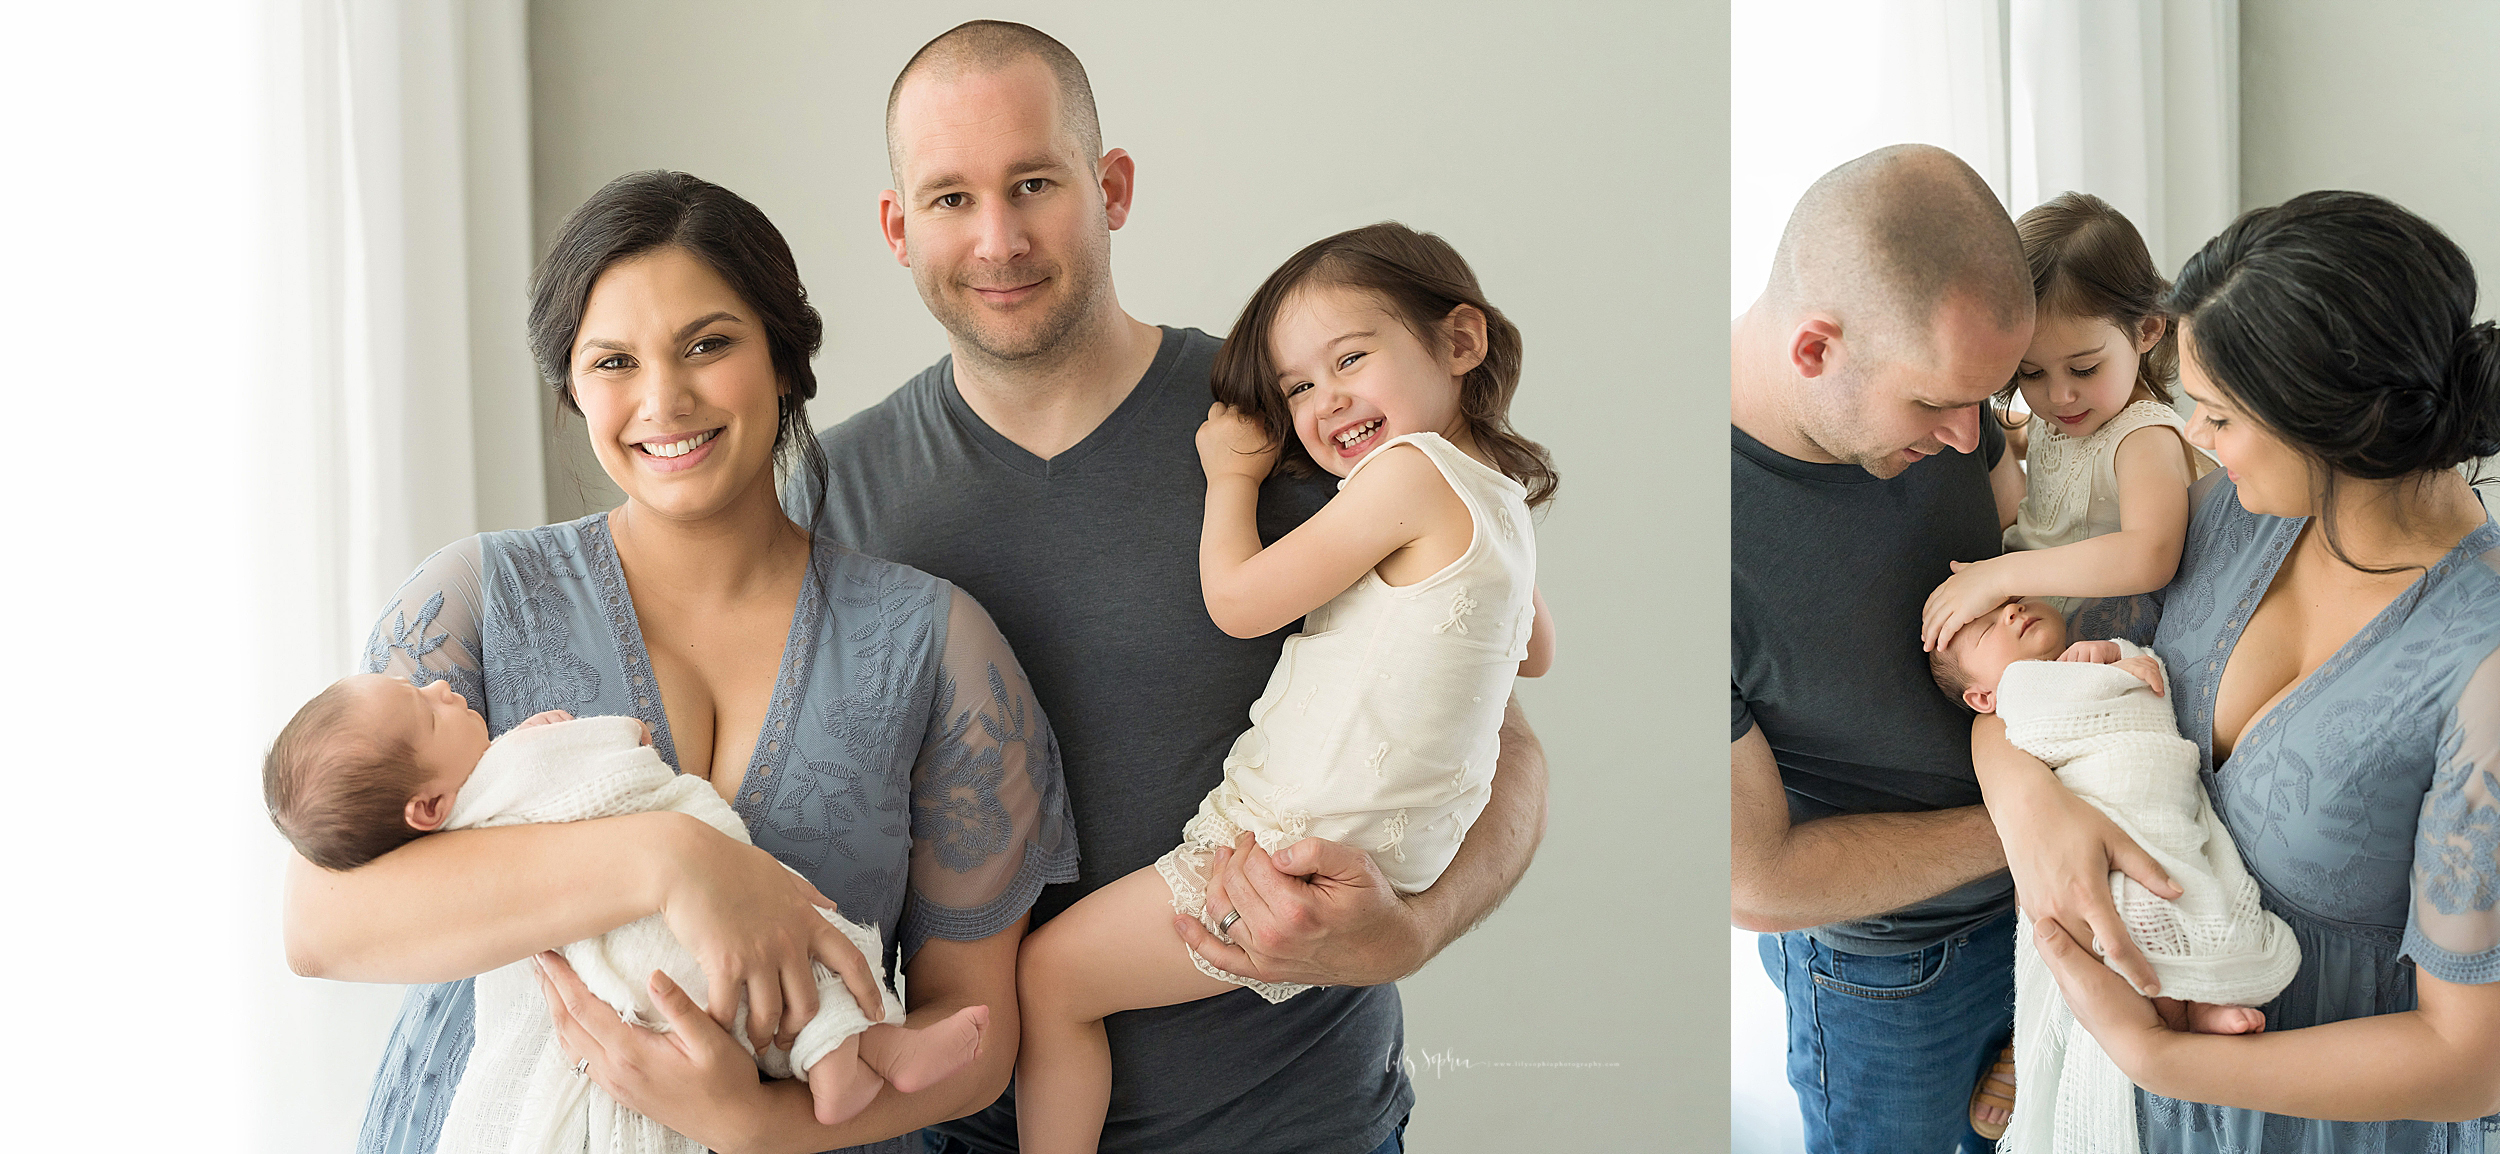 atlanta-cumming-alpharetta-brookhaven-virginia-highlands-smyrna-decatur-lily-sophia-photography-studio-newborn-session-toddler-big-sister-baby-boy-family-pictures_0774.jpg